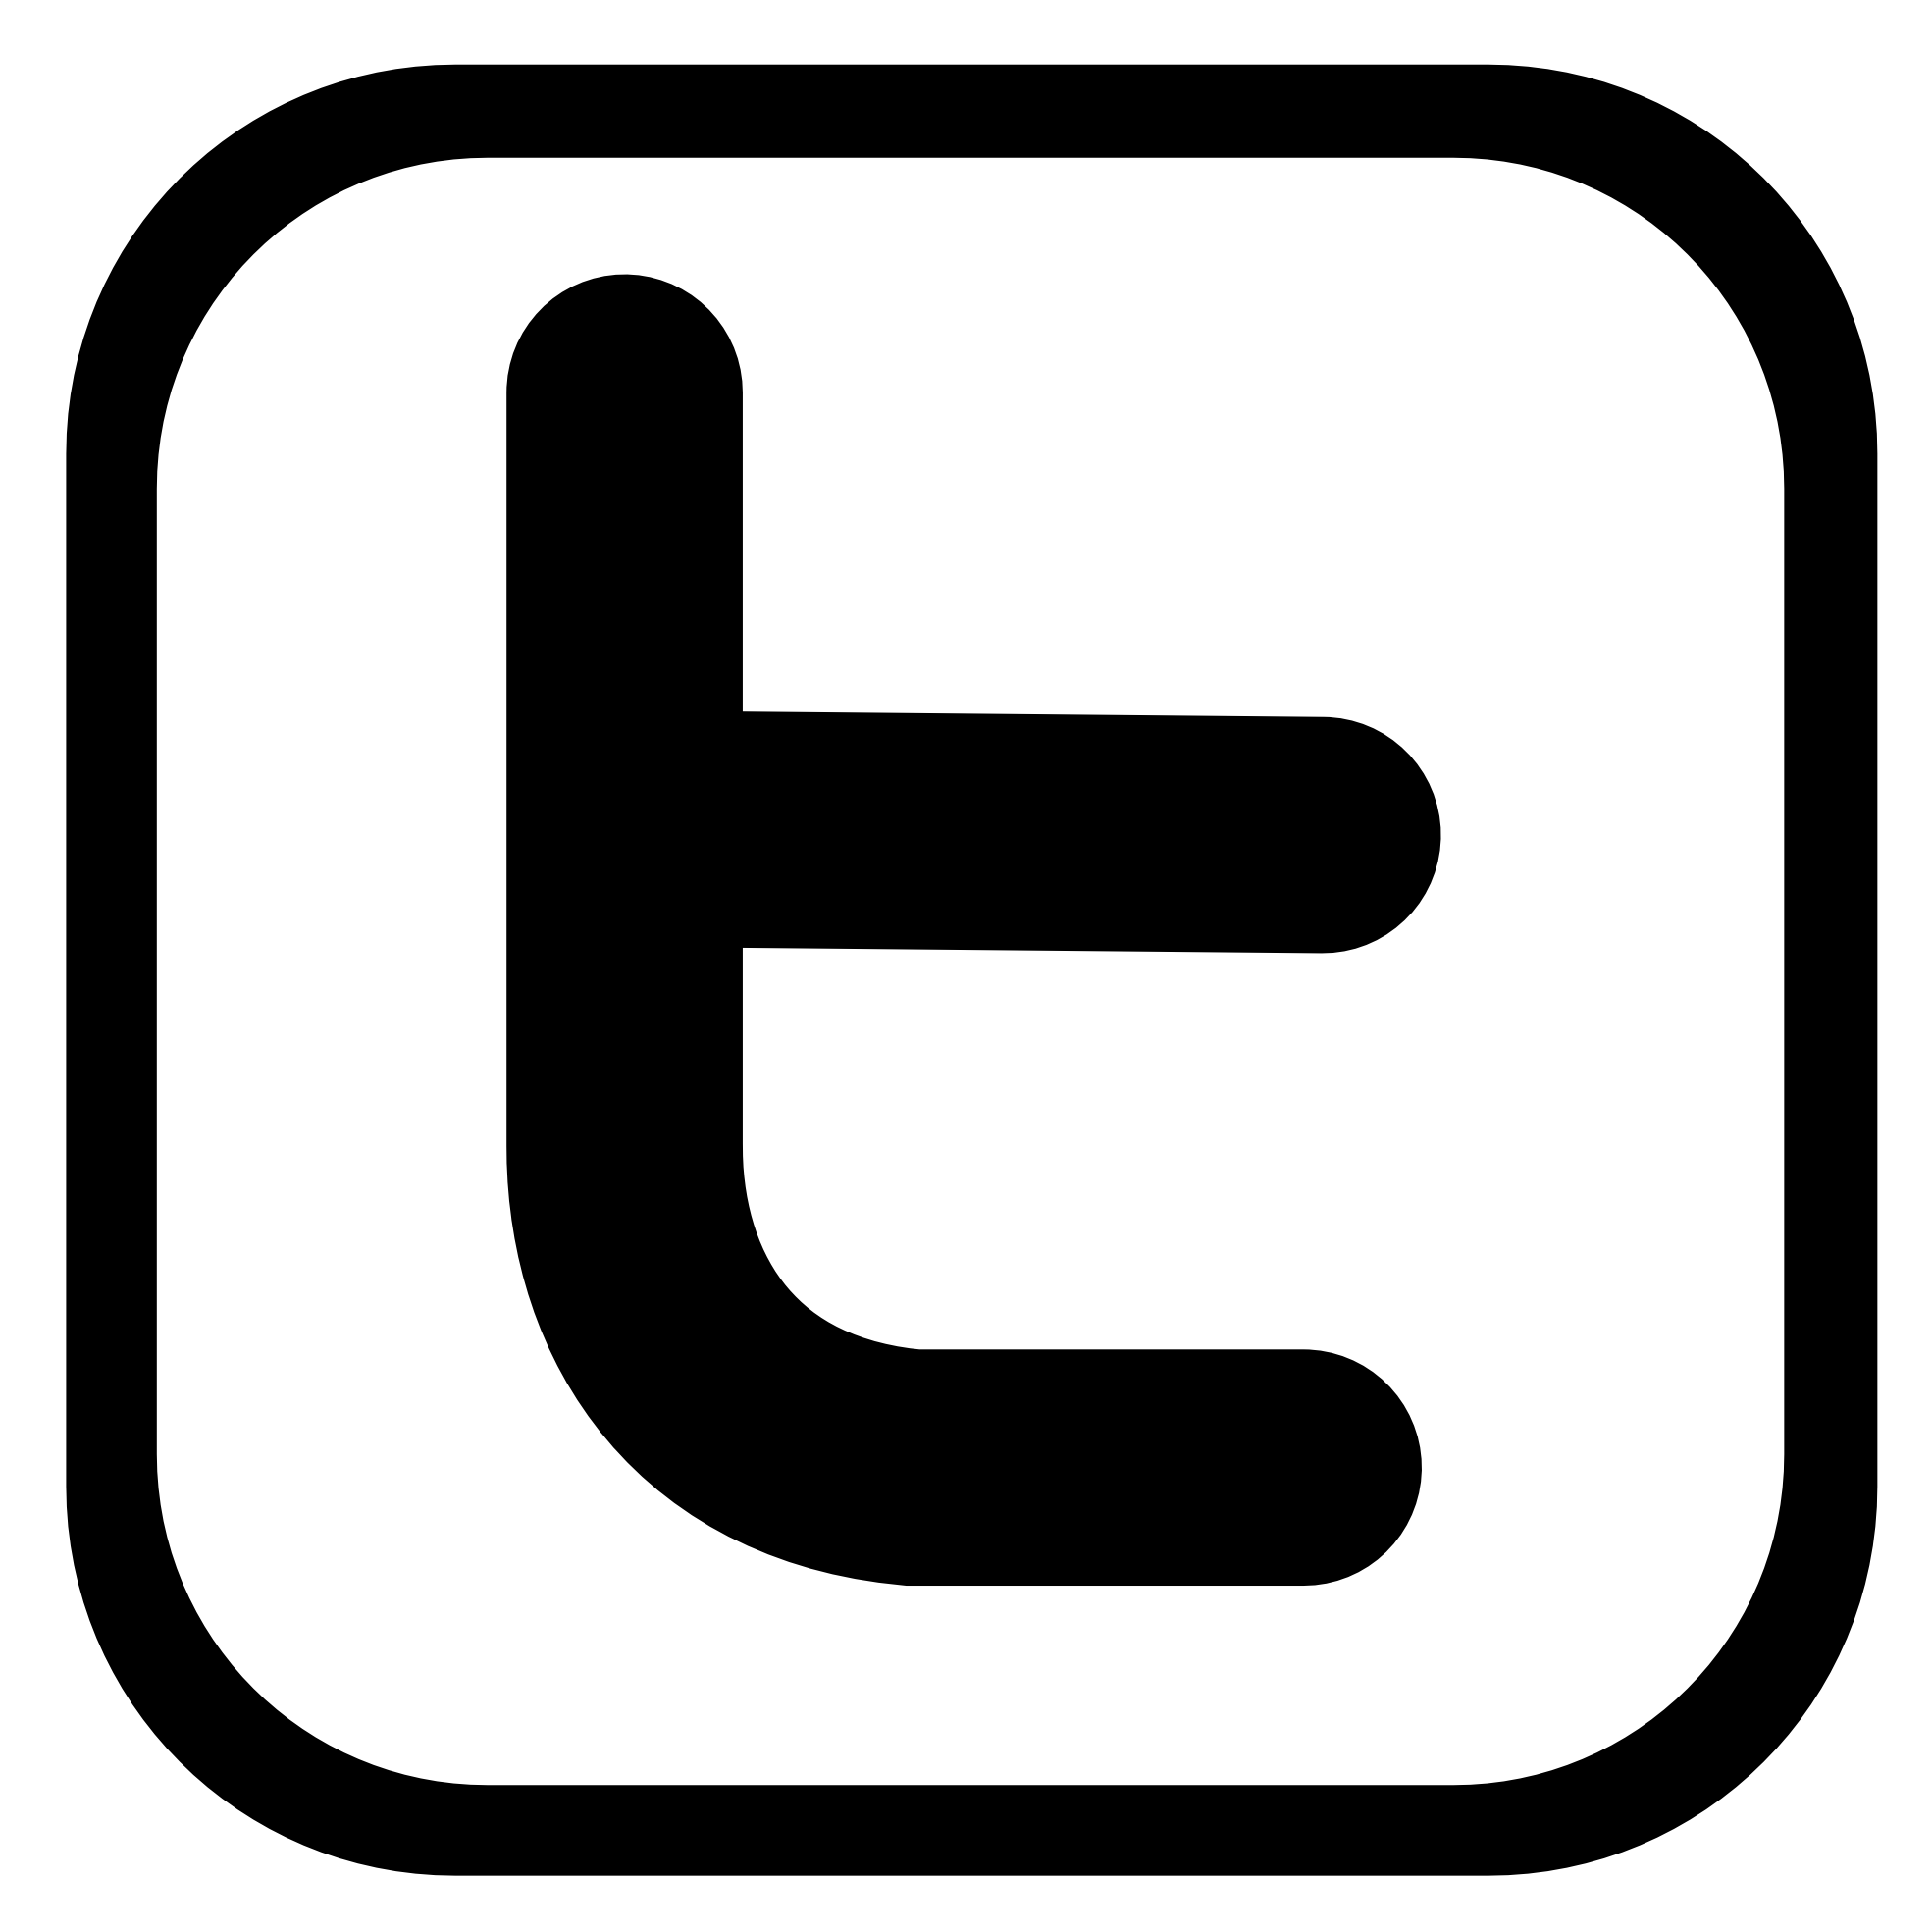 1969x1969 17 Black And White Twitter Icon Images